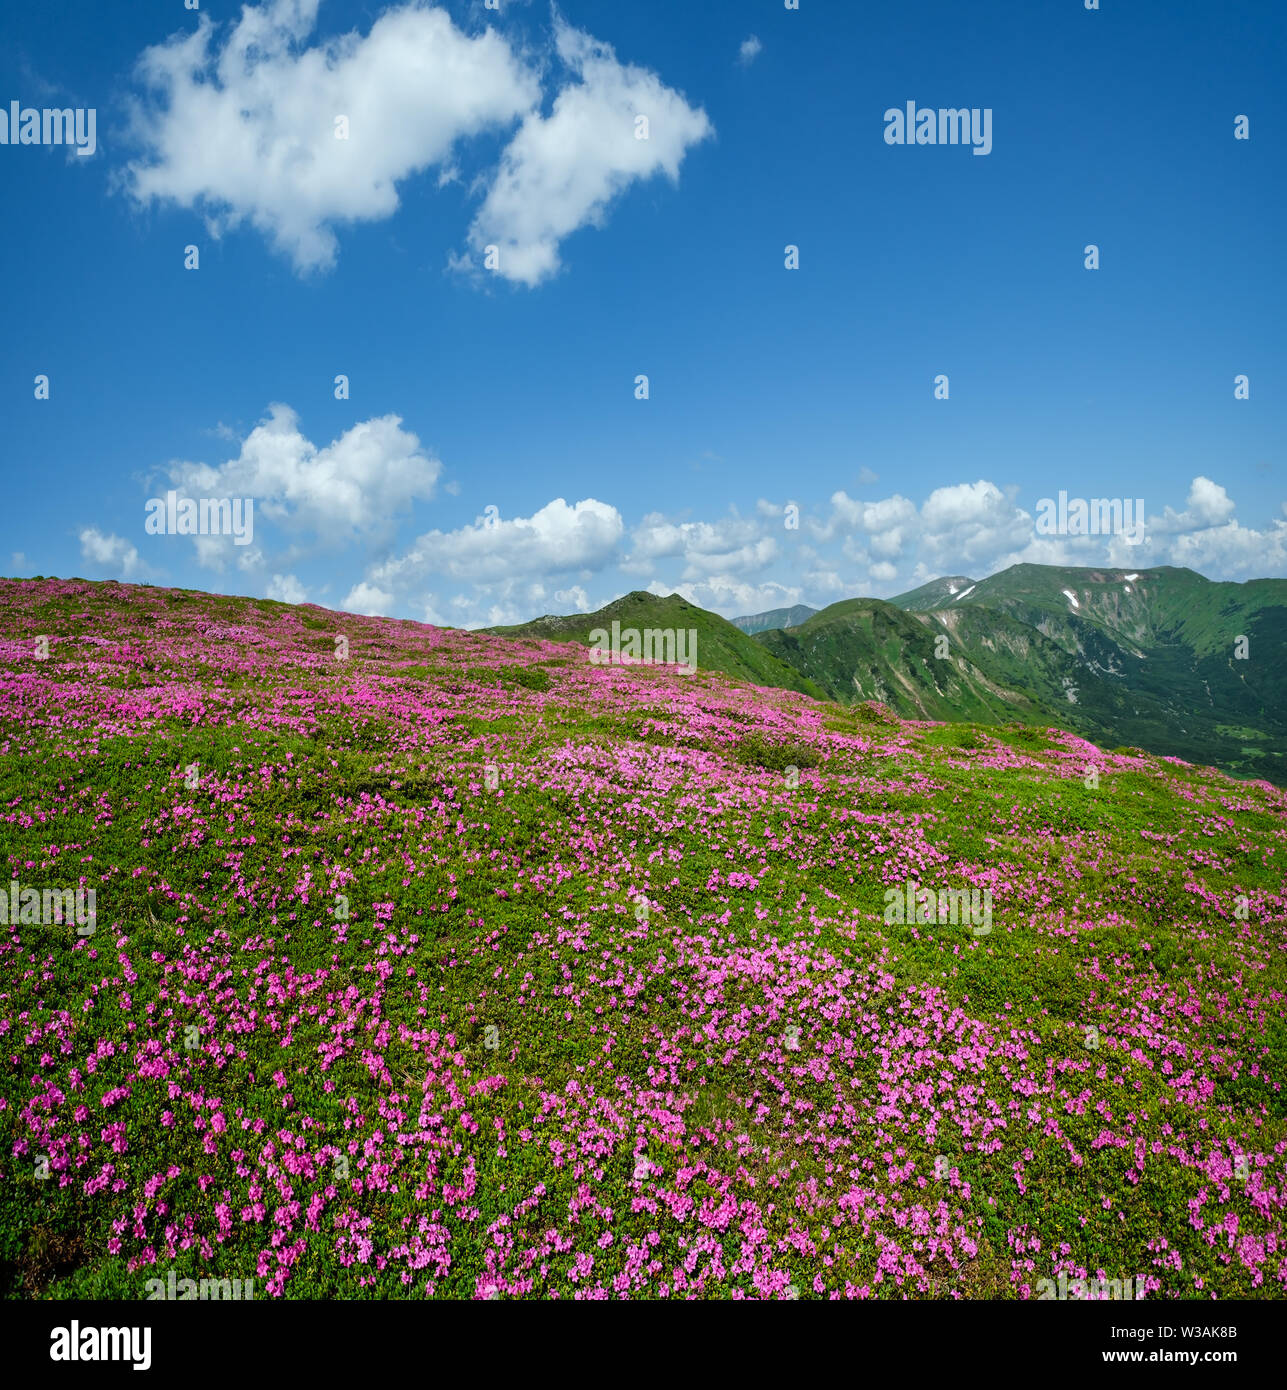 Blossoming slopes (rhododendron flowers ) of Carpathian mountains, Chornohora, Ukraine. Summer. - Stock Image